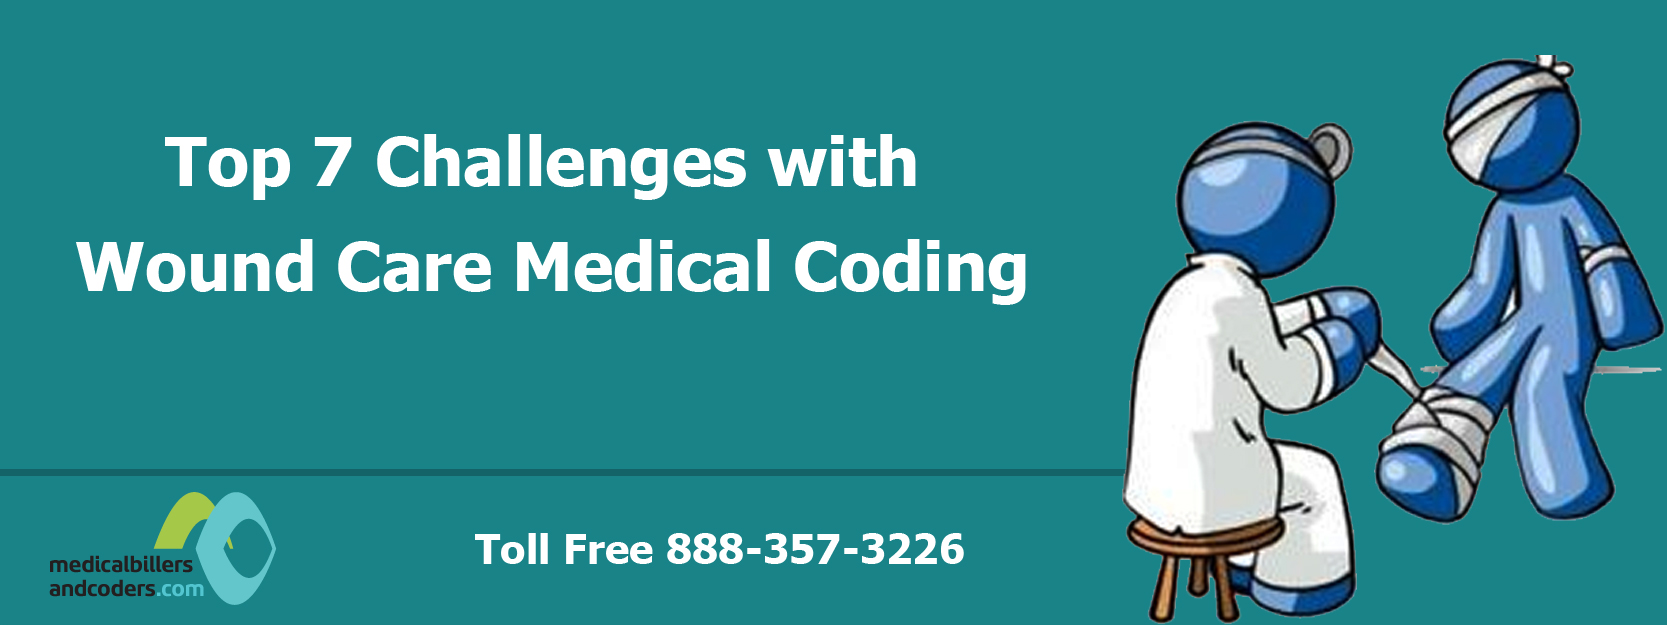 Top 7 Challenges with Wound Care Medical Coding